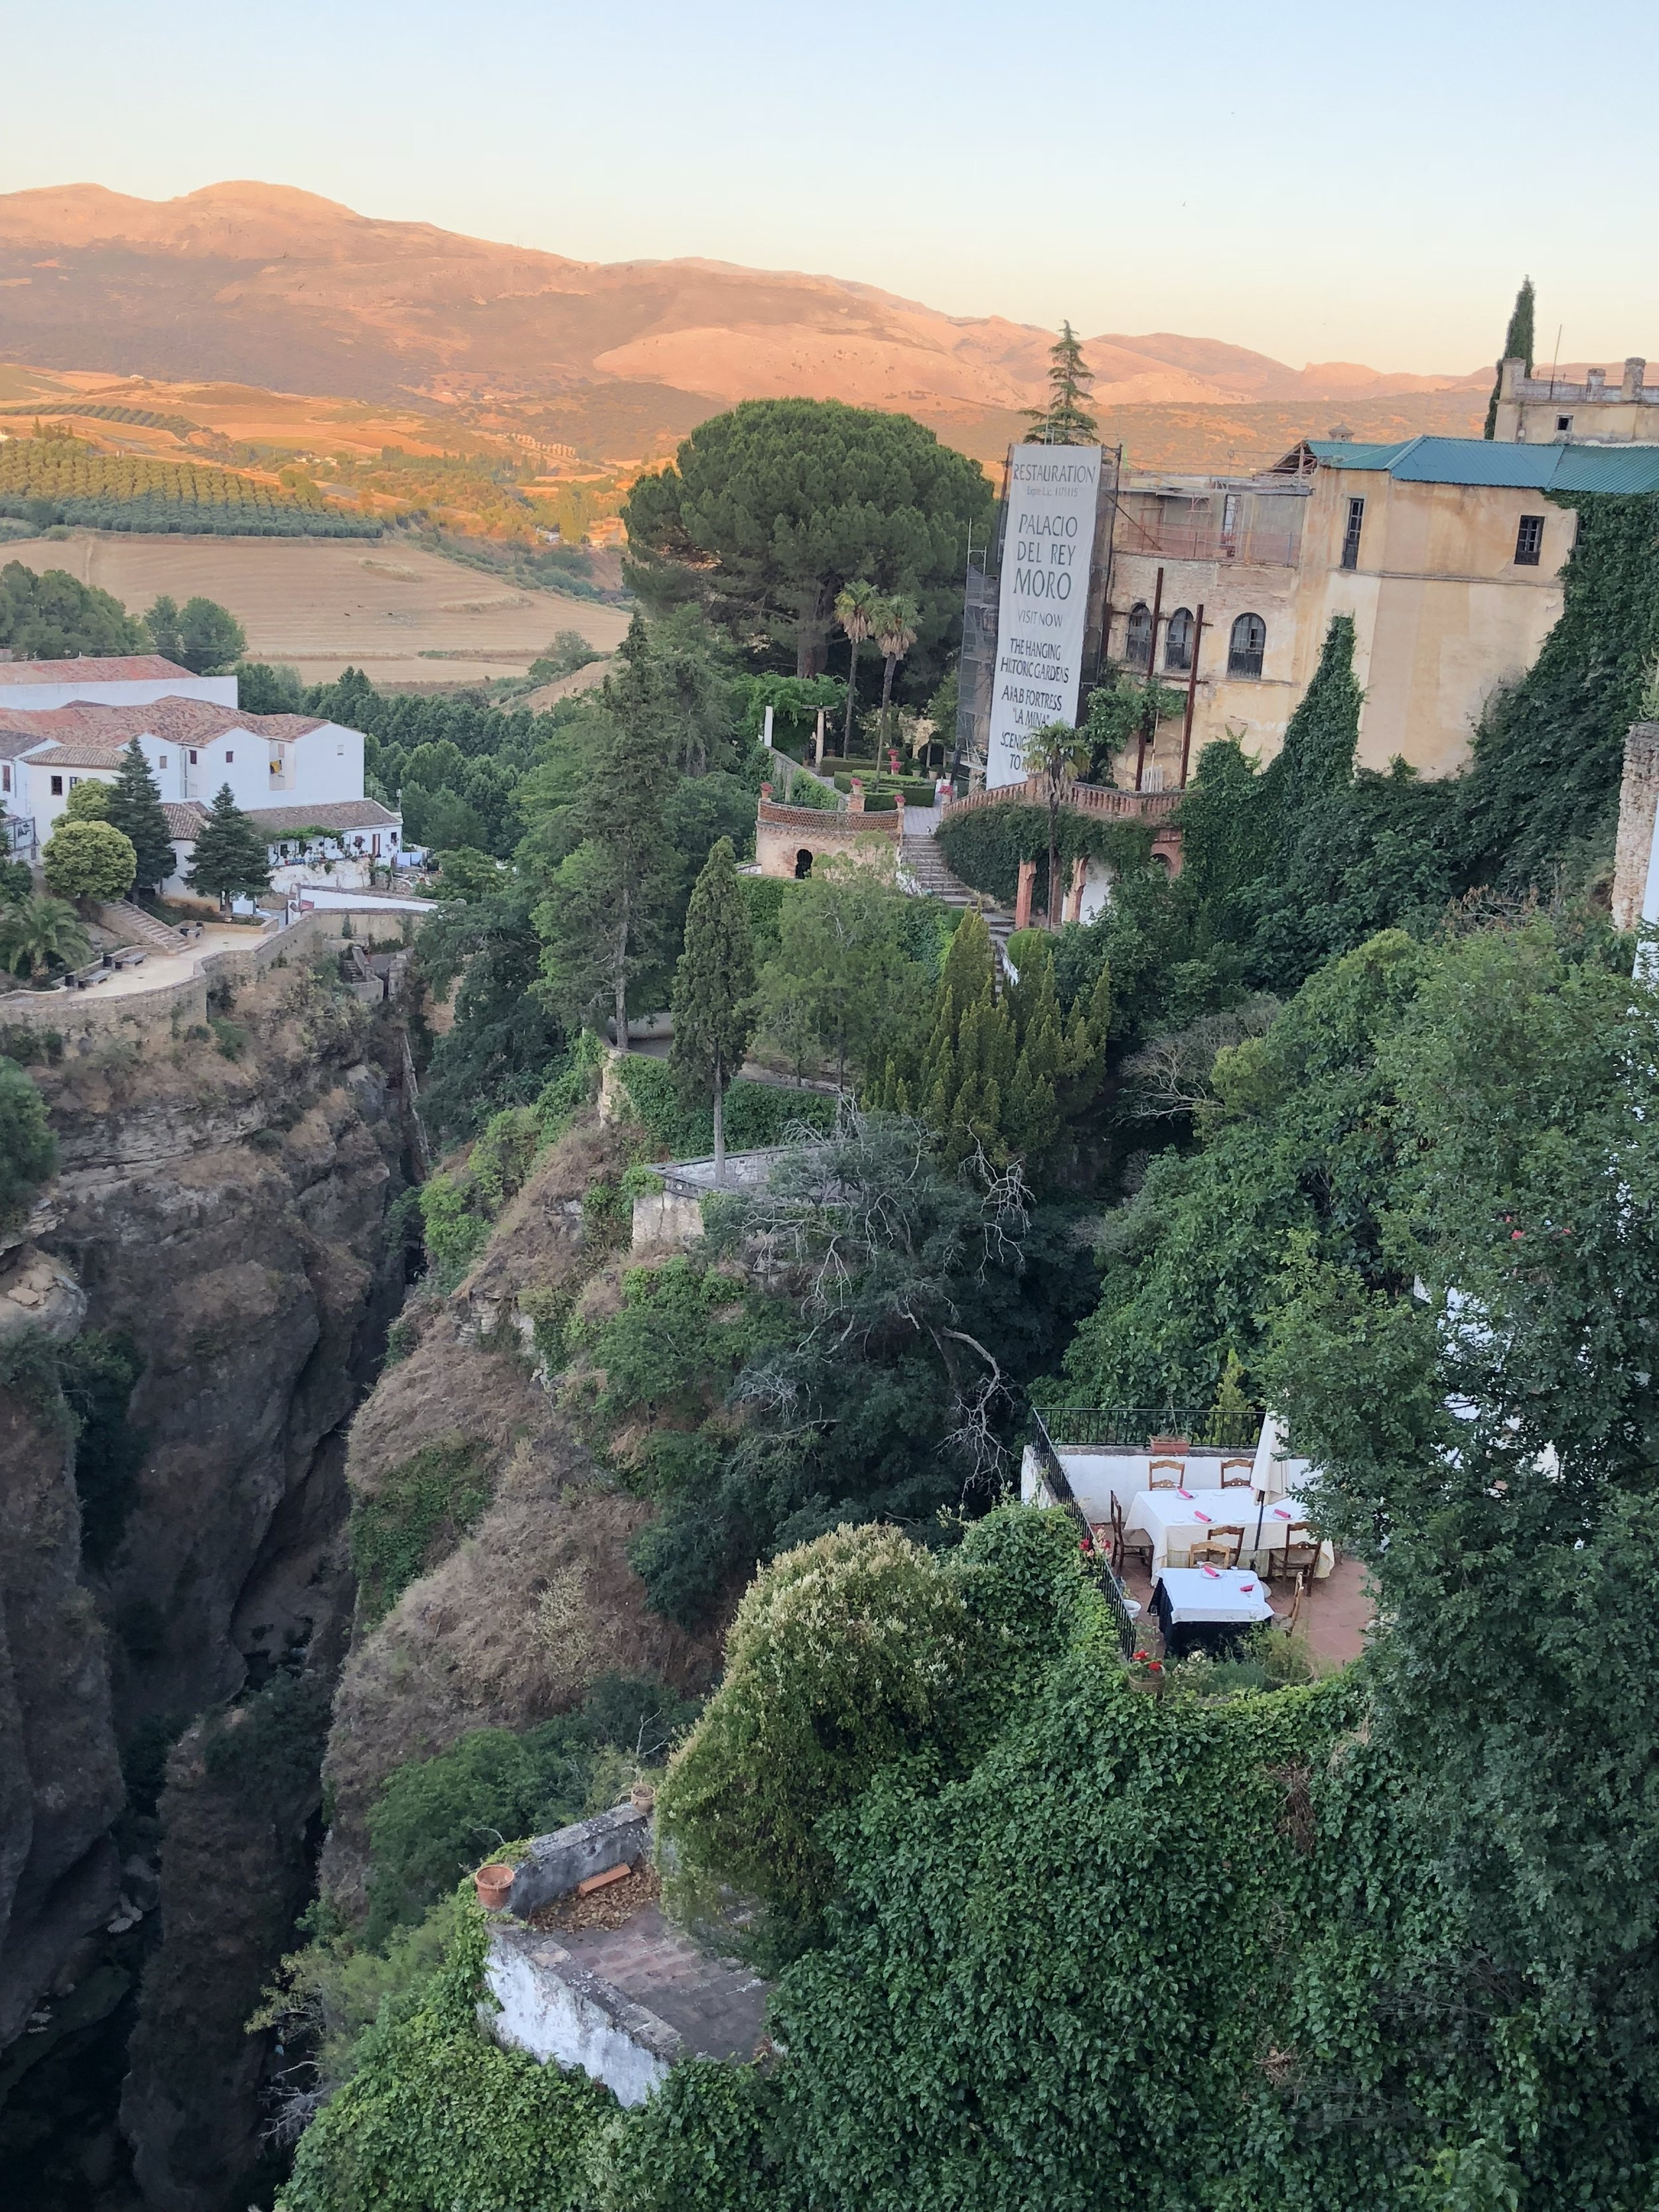 View from the restaurant we ate at. There are multiple of places to eat with great views in Ronda.